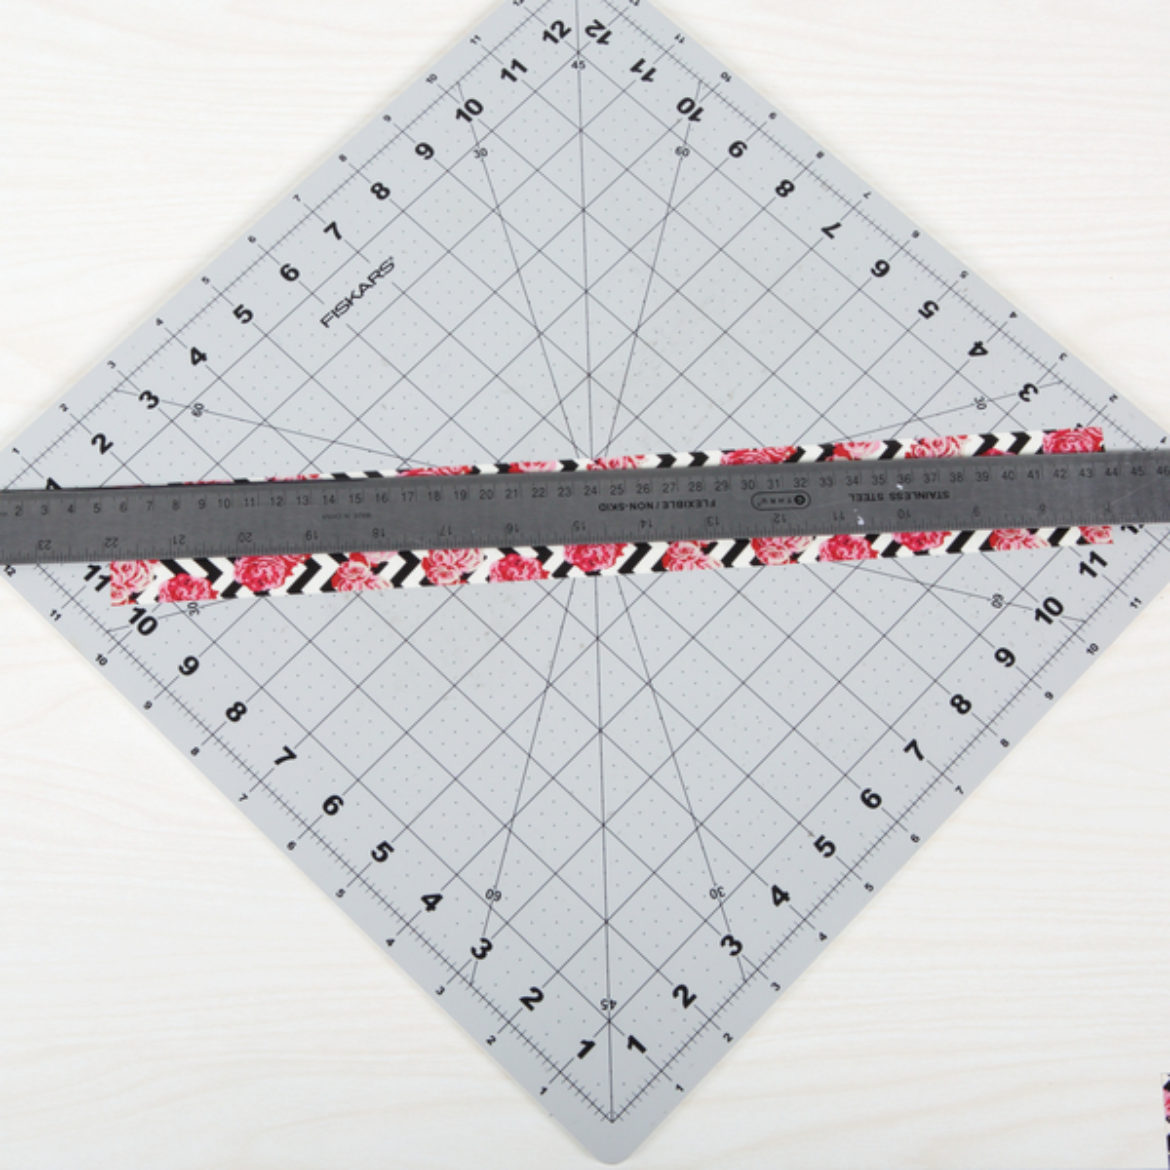 Long triangle from the Duck Tape strip from the previous step. Cut lengthwise from one corner to 1/3 of the way to the center of the strip so that you get two very long and skinny triangles